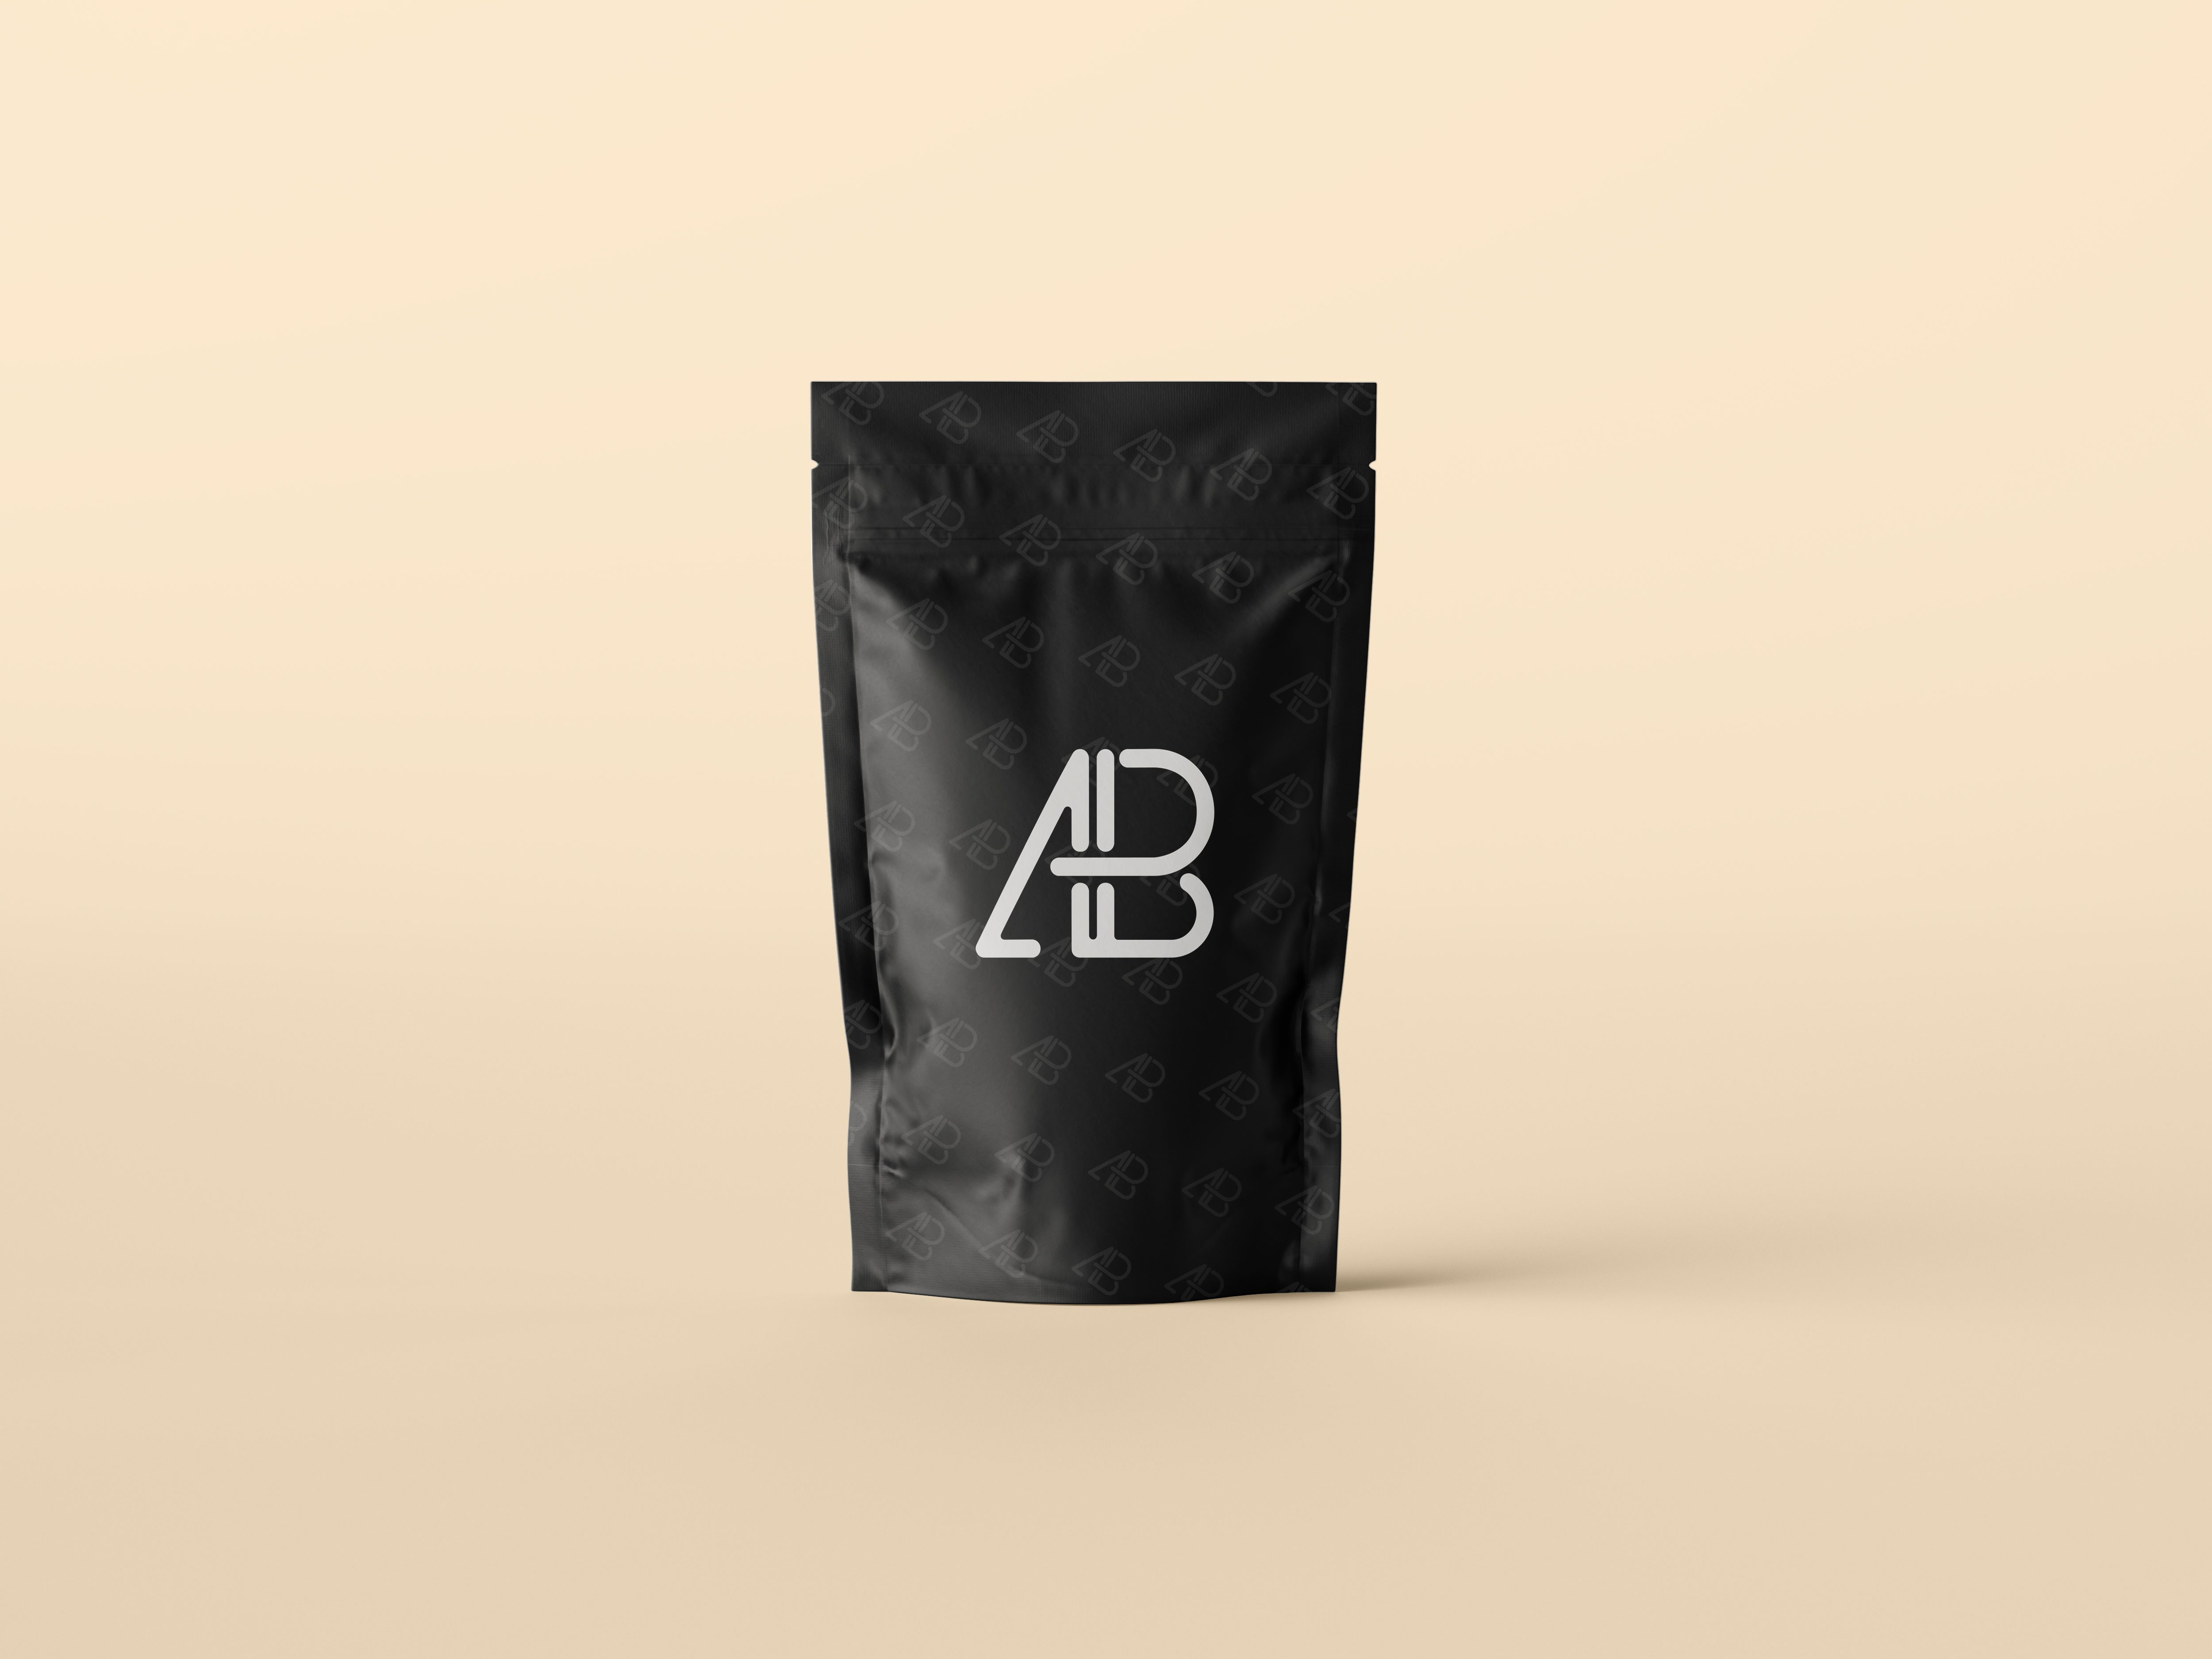 Download Pouch Bag Packaging Mockup | หีบห่อบรรจุภัณฑ์